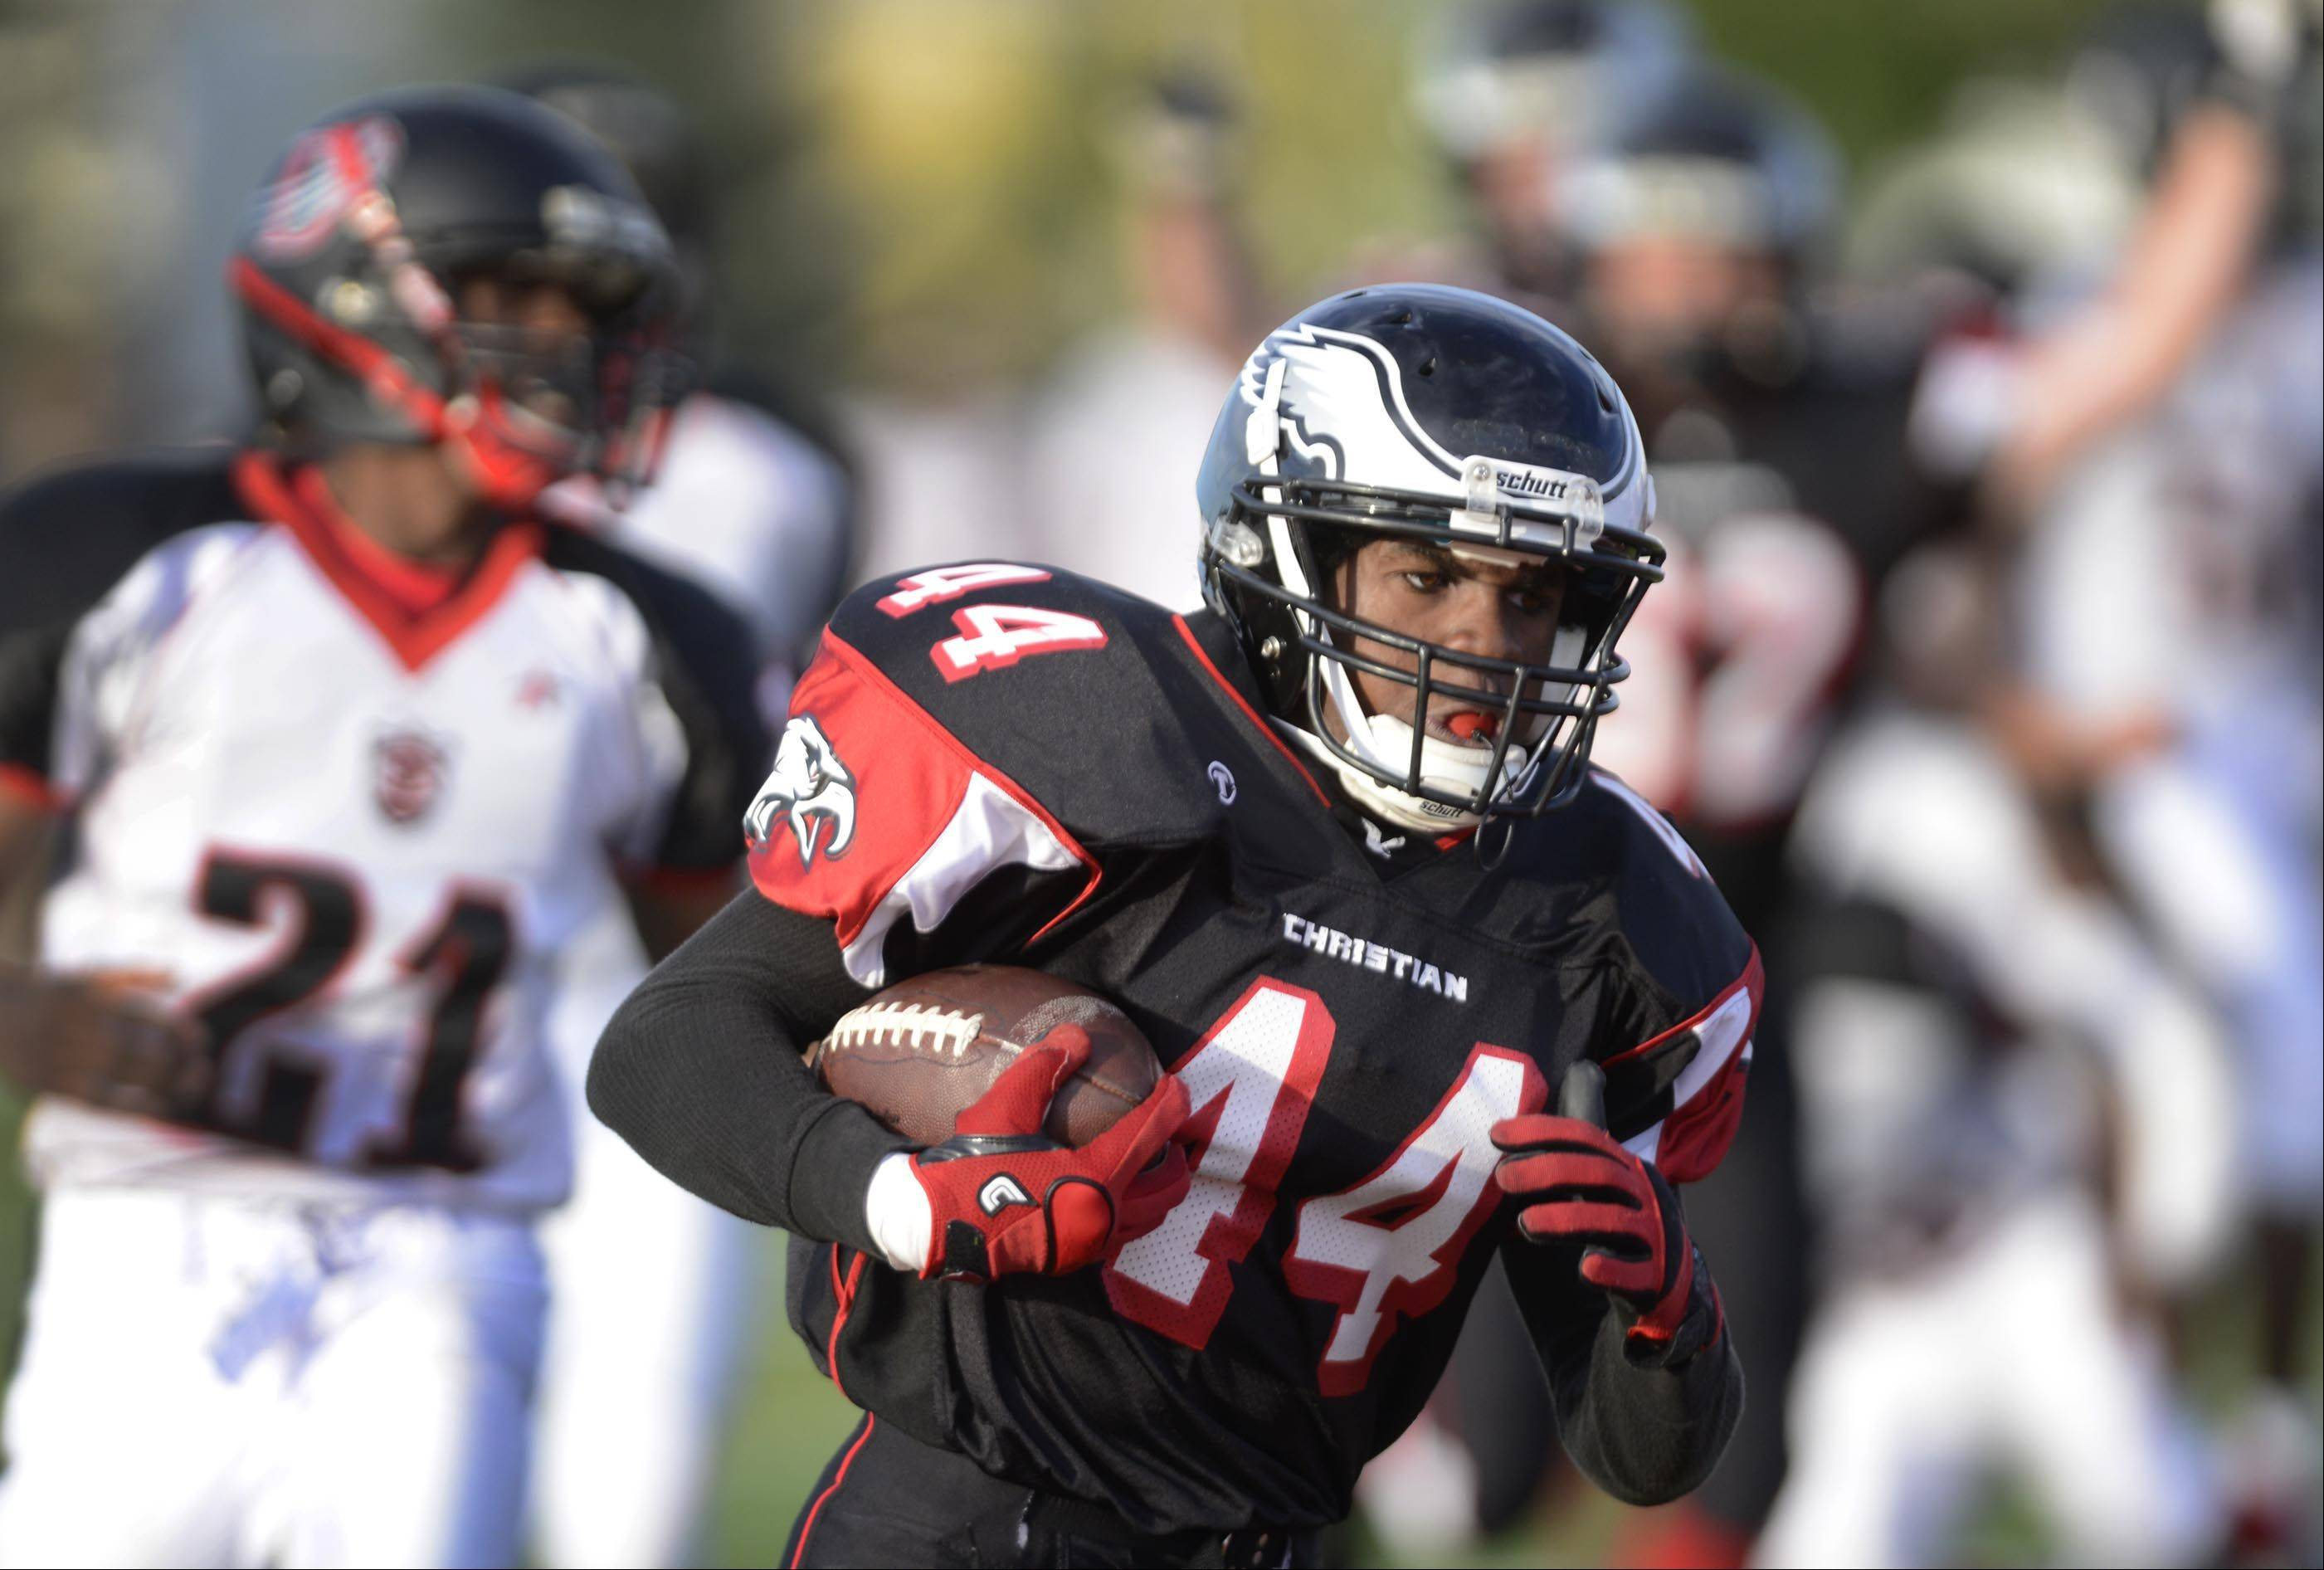 Aurora Christian's Legend Smith scores one of his first-half touchdowns against DuSable.